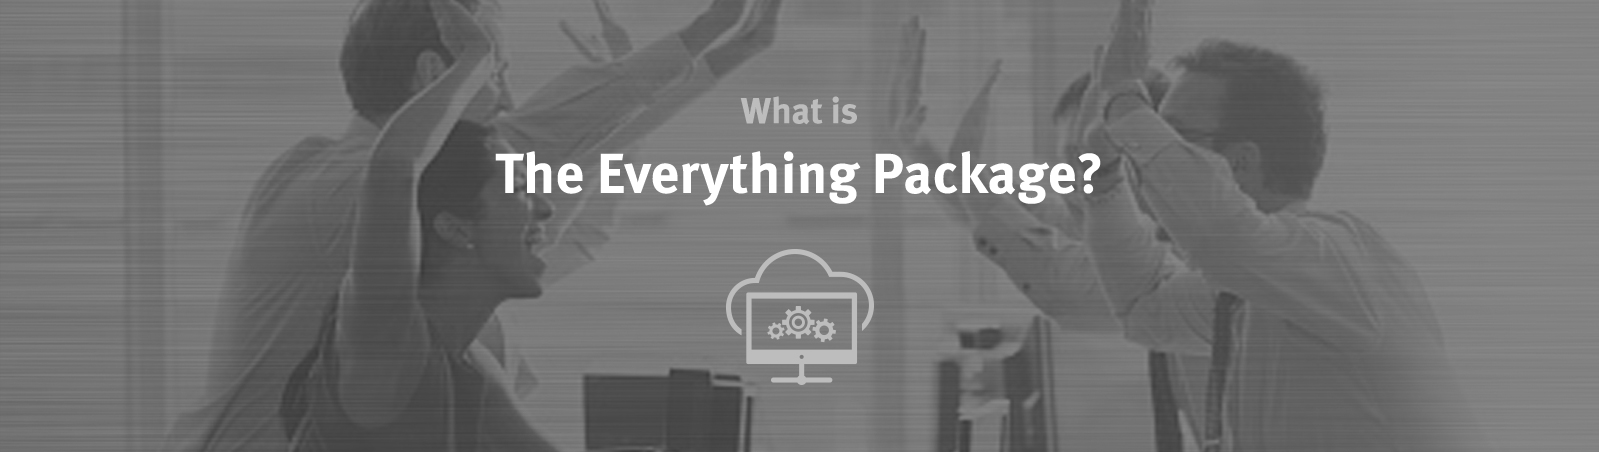 What is the Everything Package?